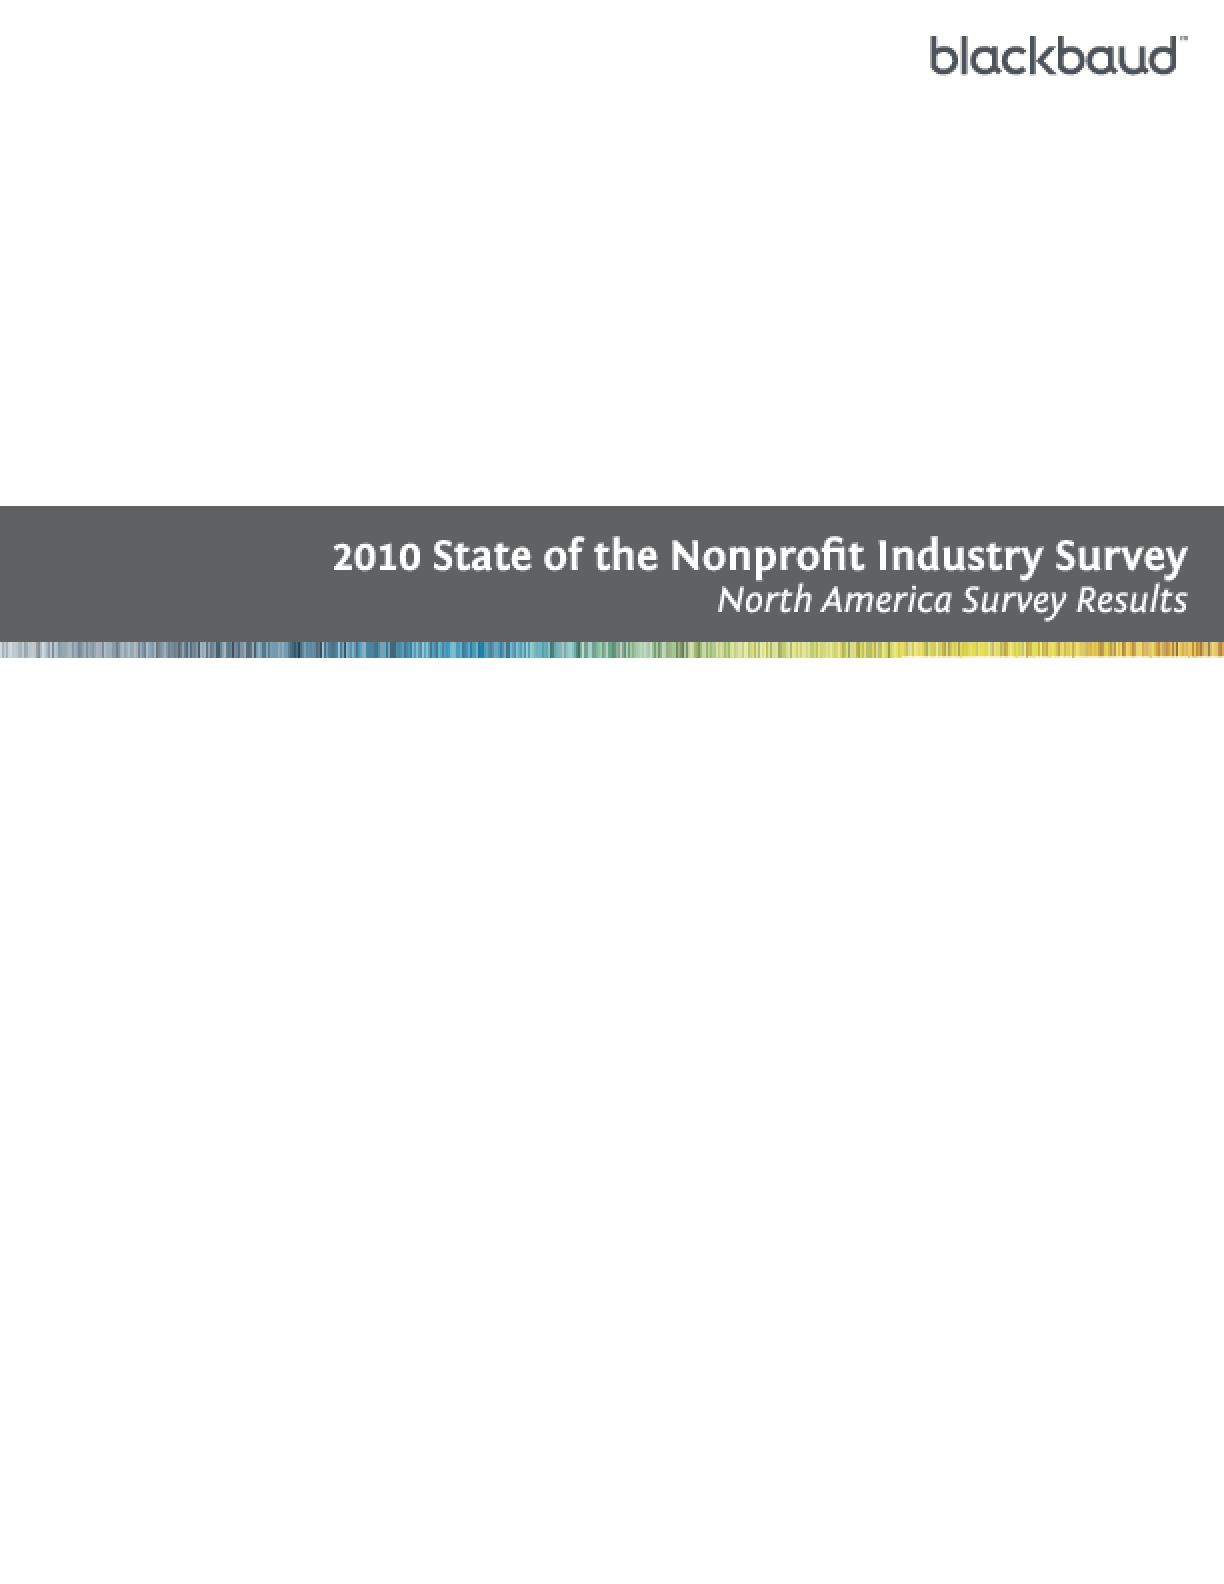 2010 State of the Nonprofit Industry Survey: North America Survey Results